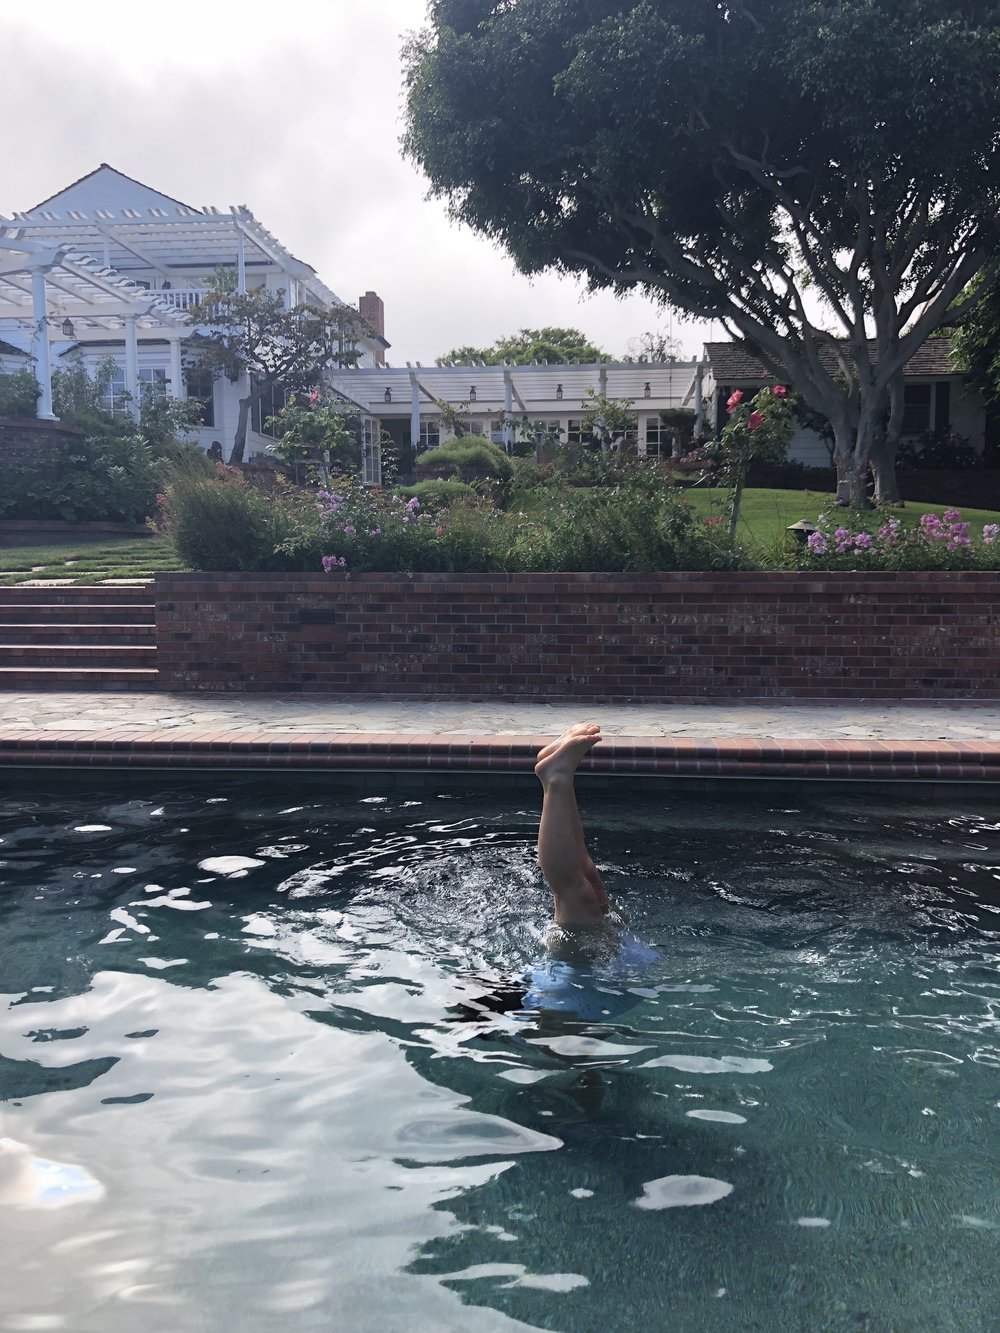 so many handstands and flips in my parents' pool! trying everything to flip that baby!